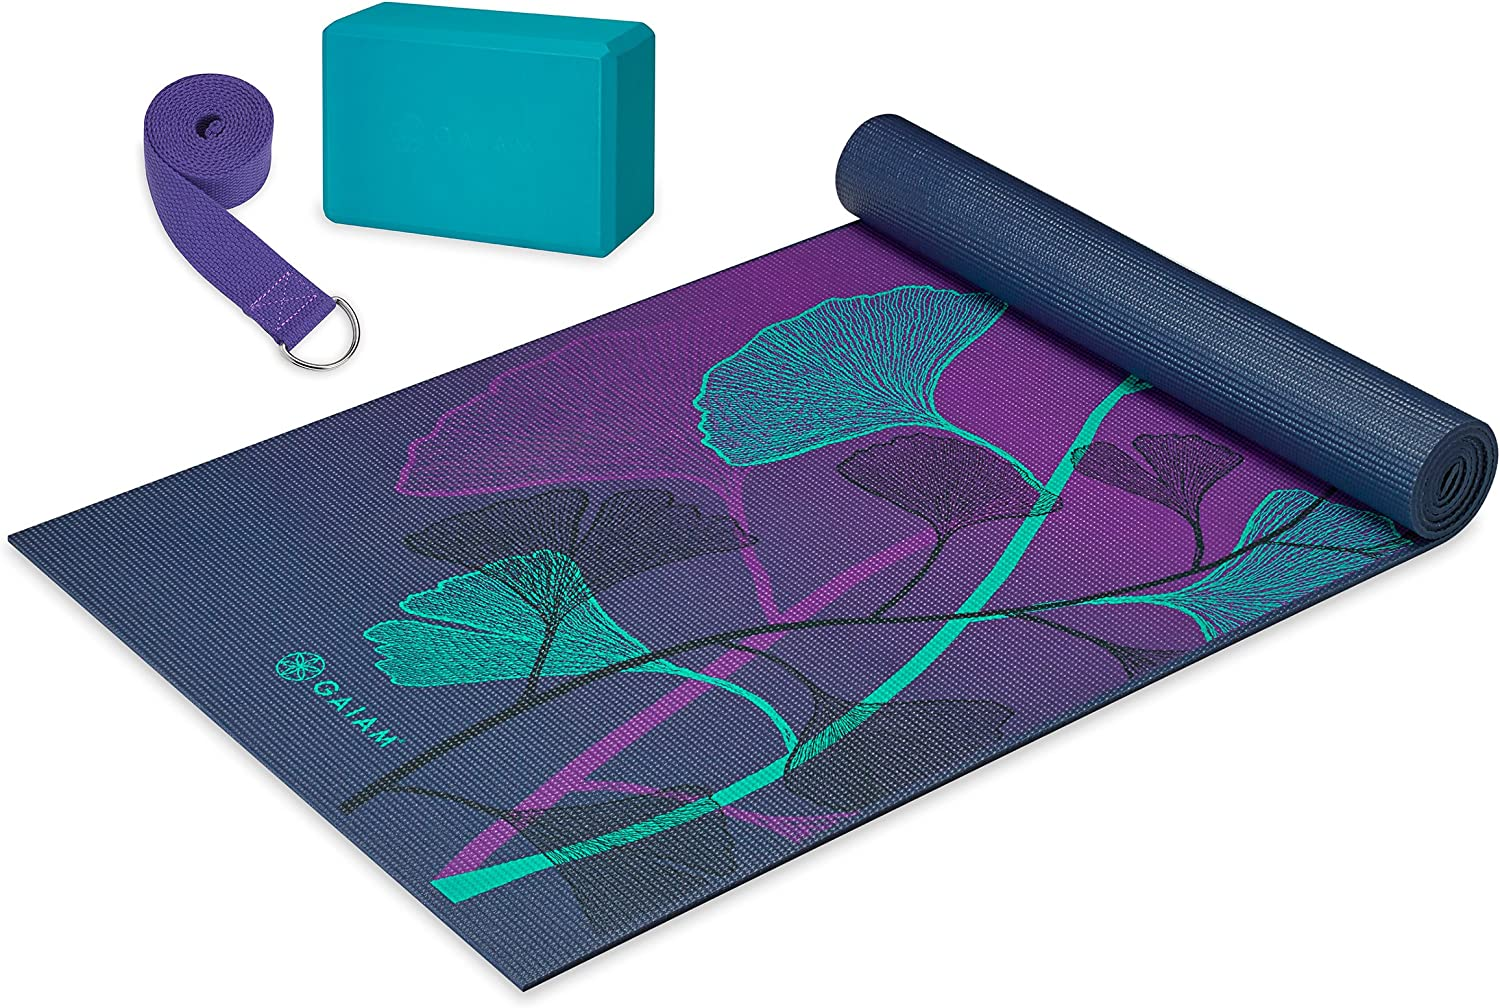 Amazon Com Gaiam Beginner S Yoga Kit Yoga Mat Yoga Block Yoga Strap Lily Shadows Sports Outdoors